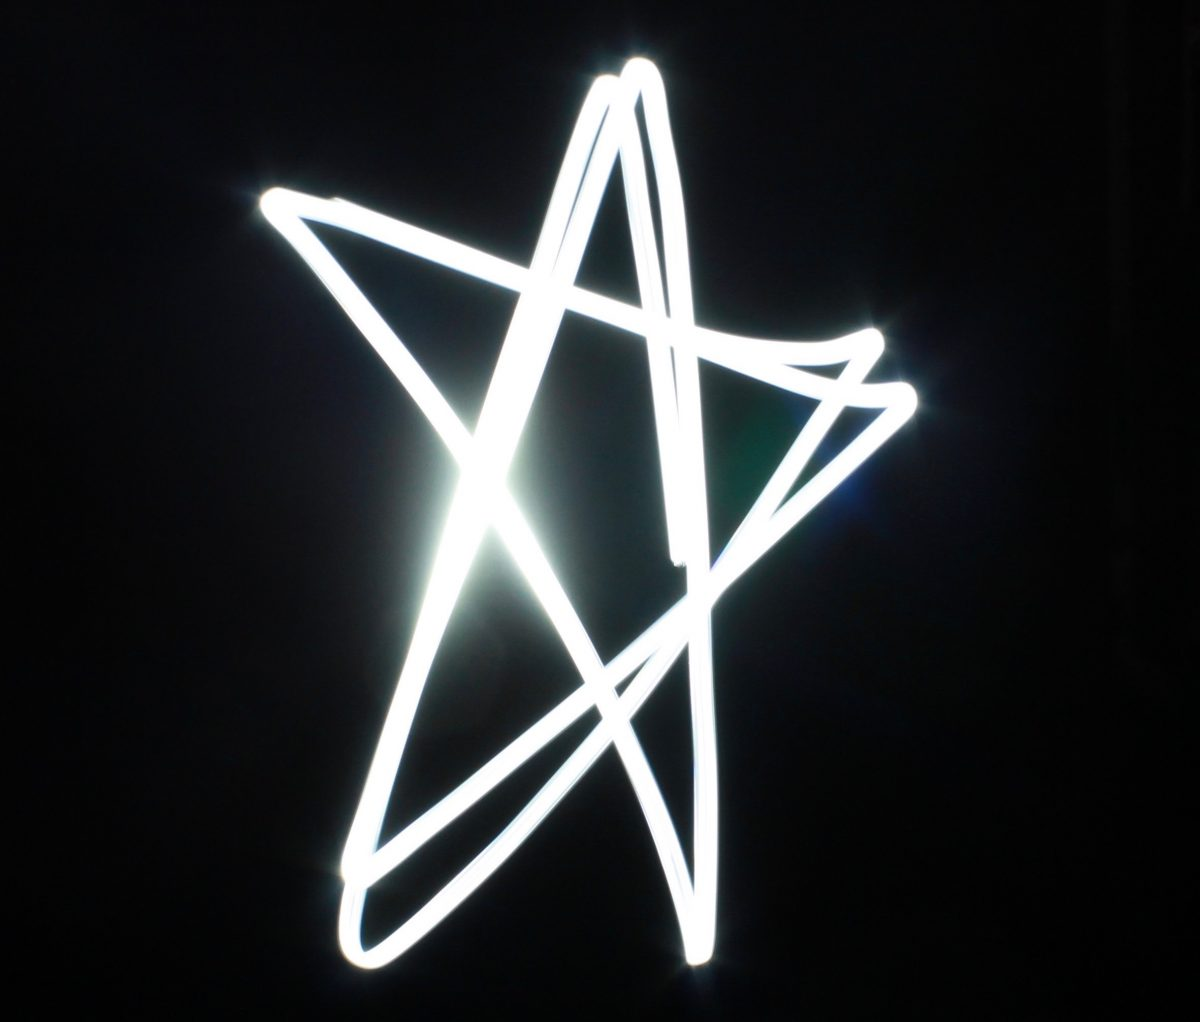 Teresa Flavin new year resolution 2018 star made with torch flashlight